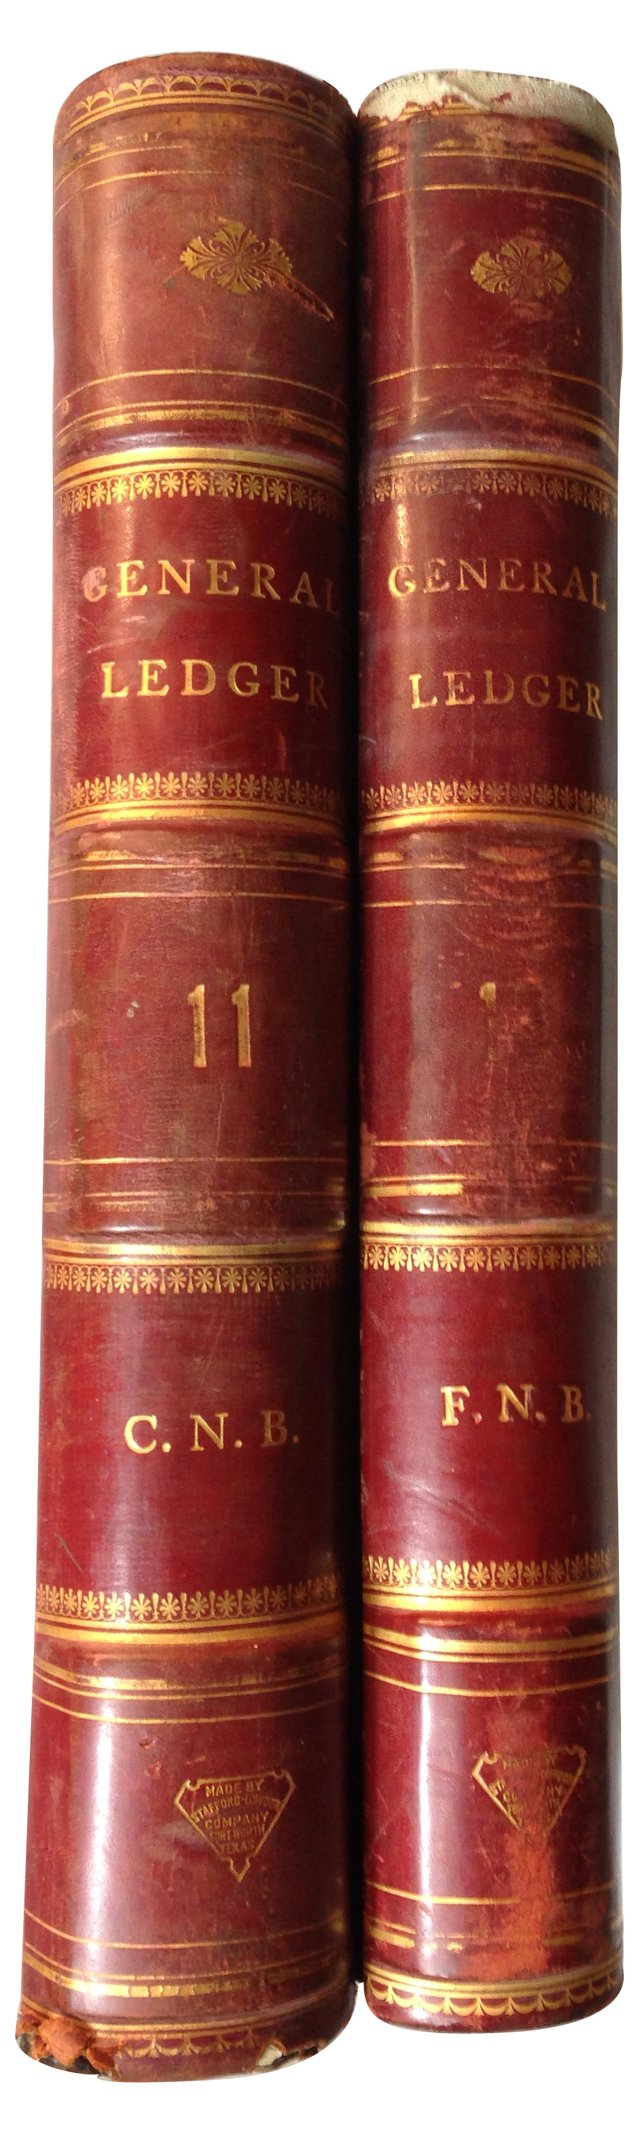 Oversize Leather Ledgers, Pair